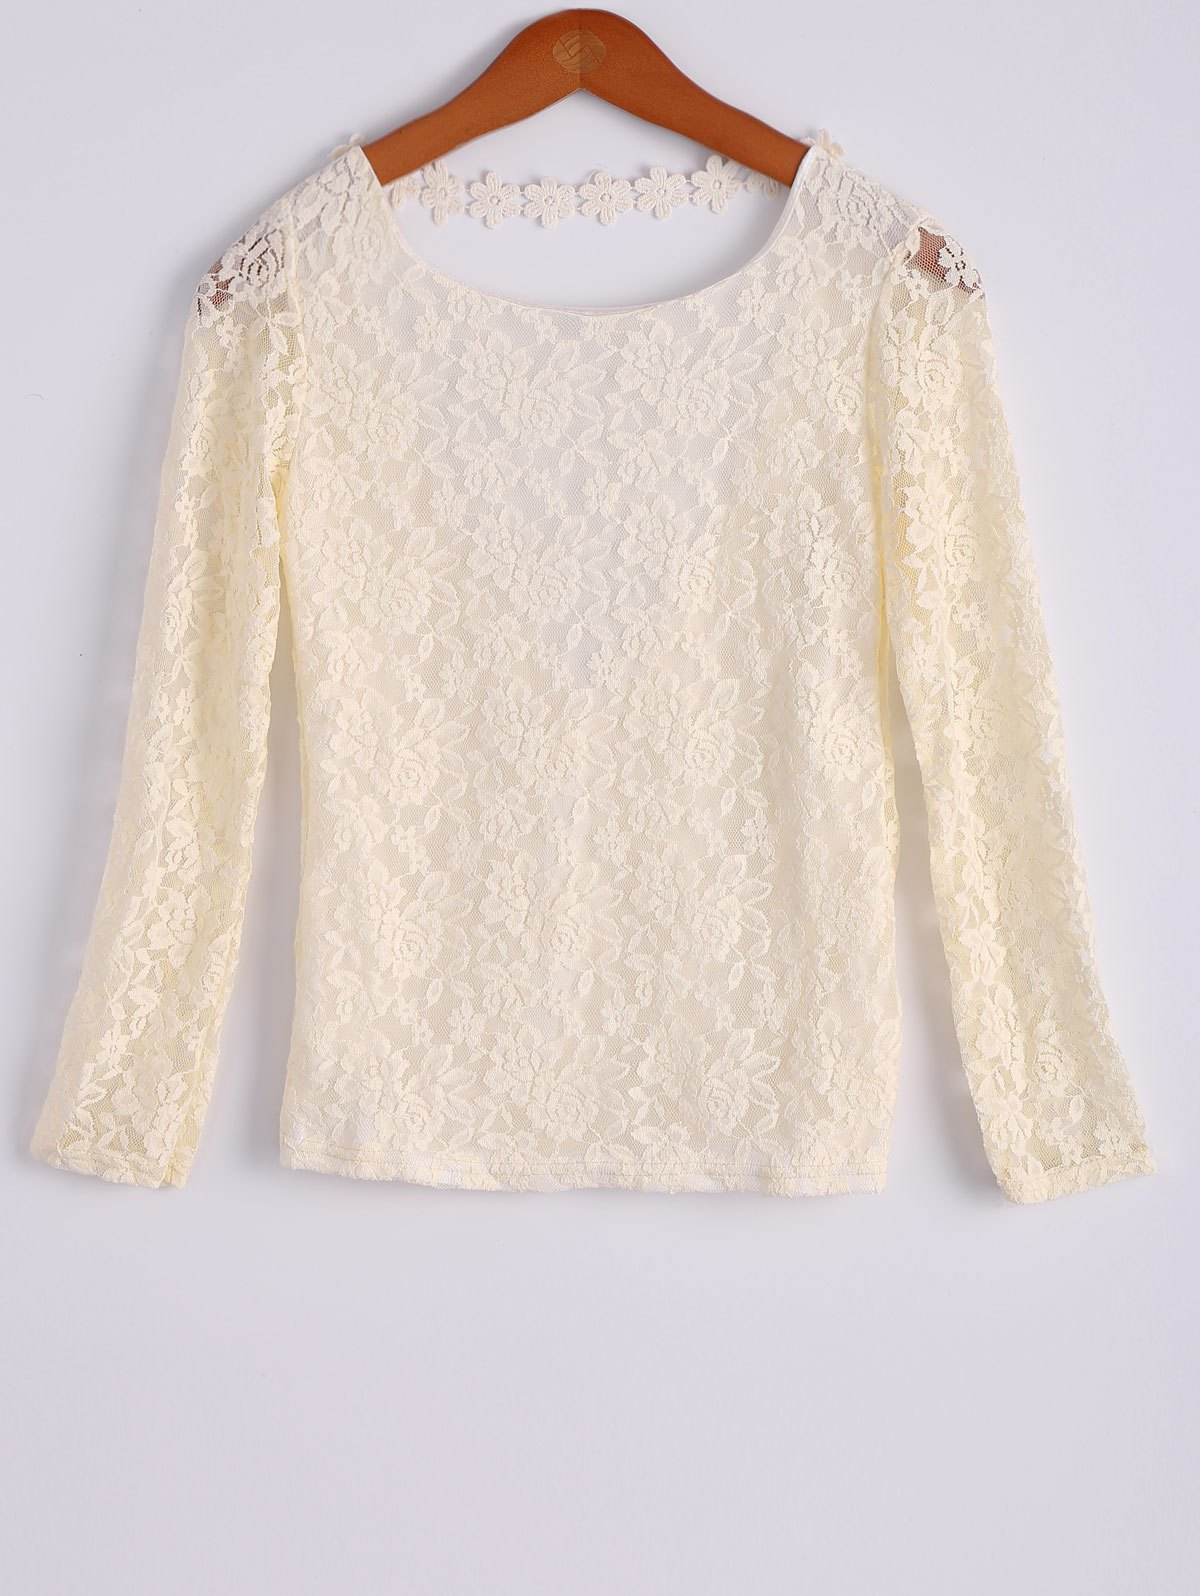 Stylish Long Sleeve Scoop Collar White Backless Lace Women's Blouse - BEIGE S